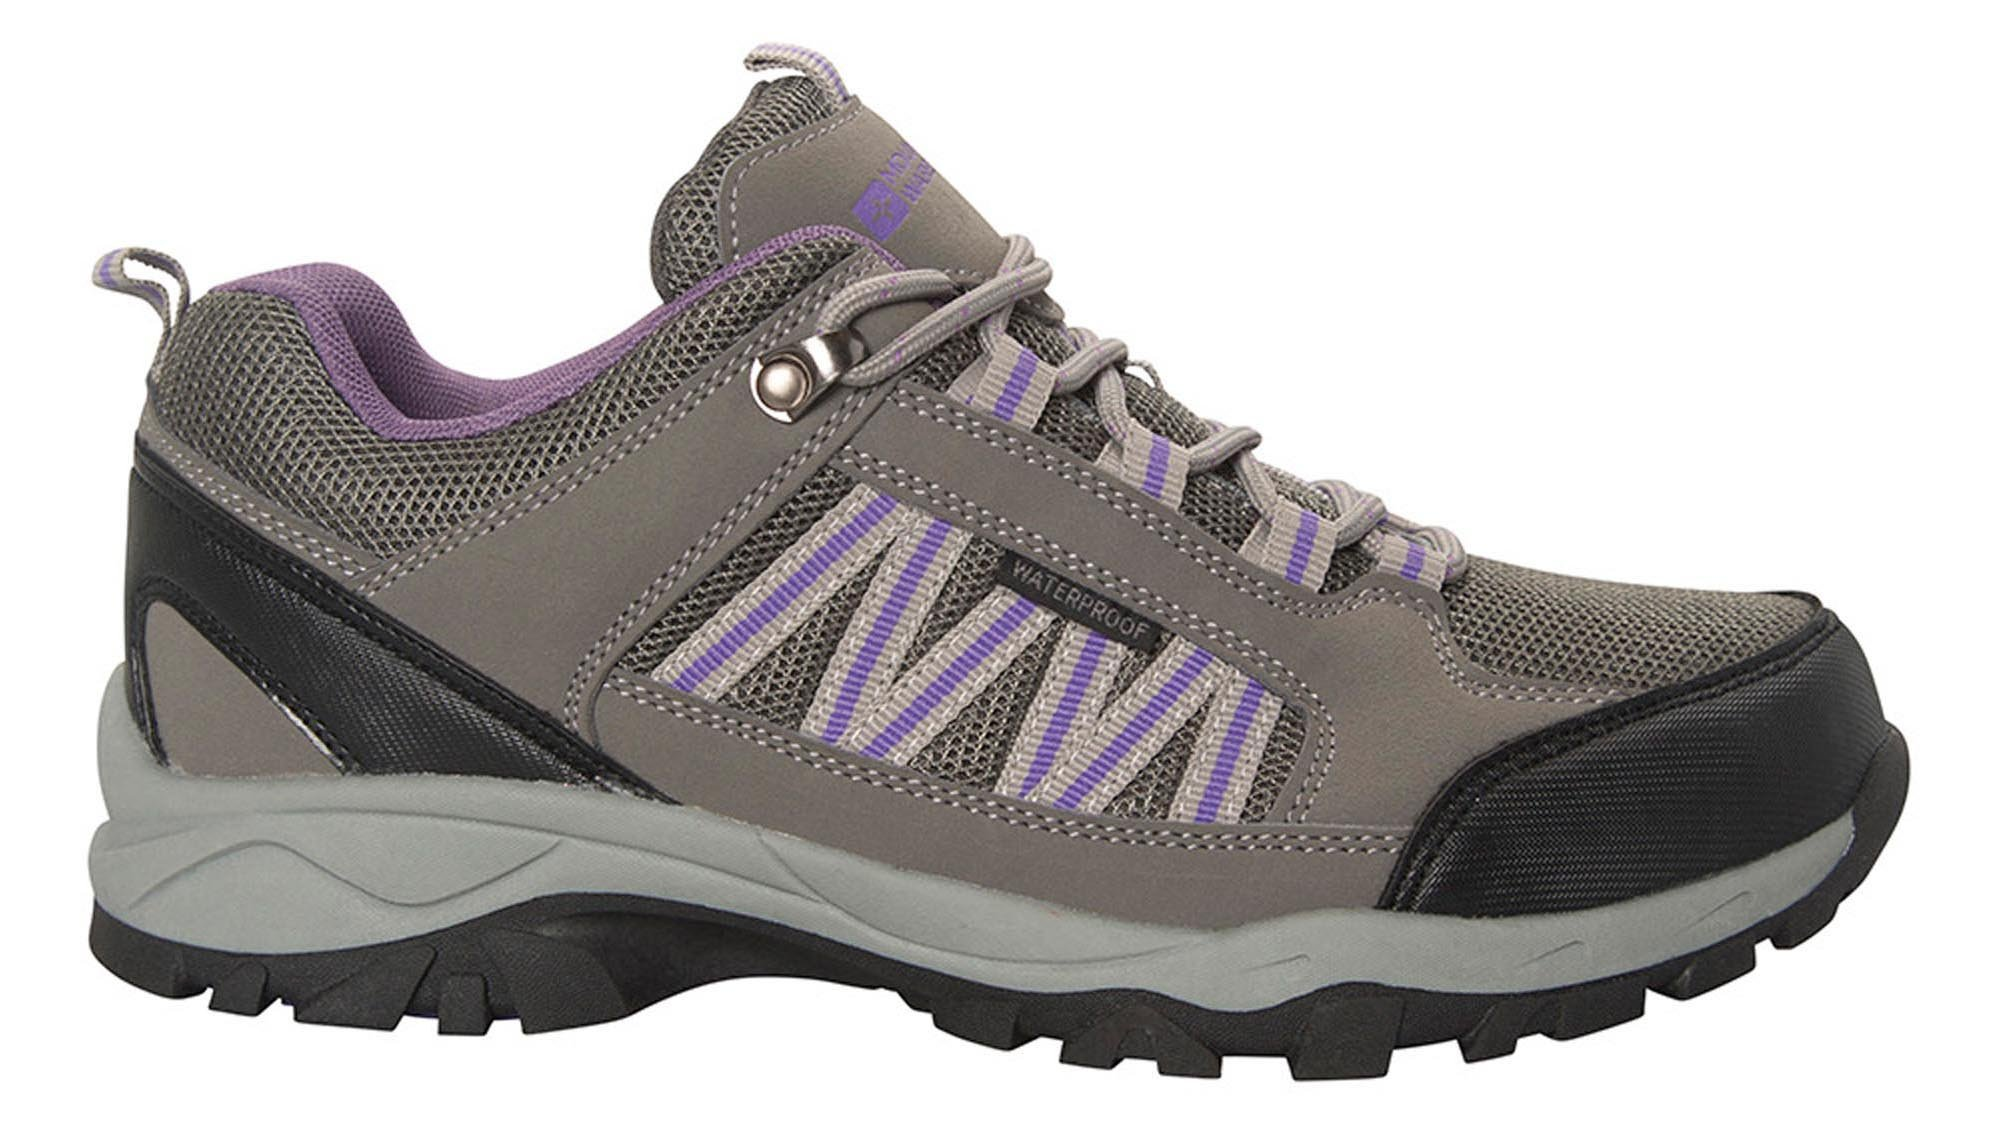 4aaed9d4c6a A very pocket-friendly price for a surprisingly high-performing shoe. The  Paths